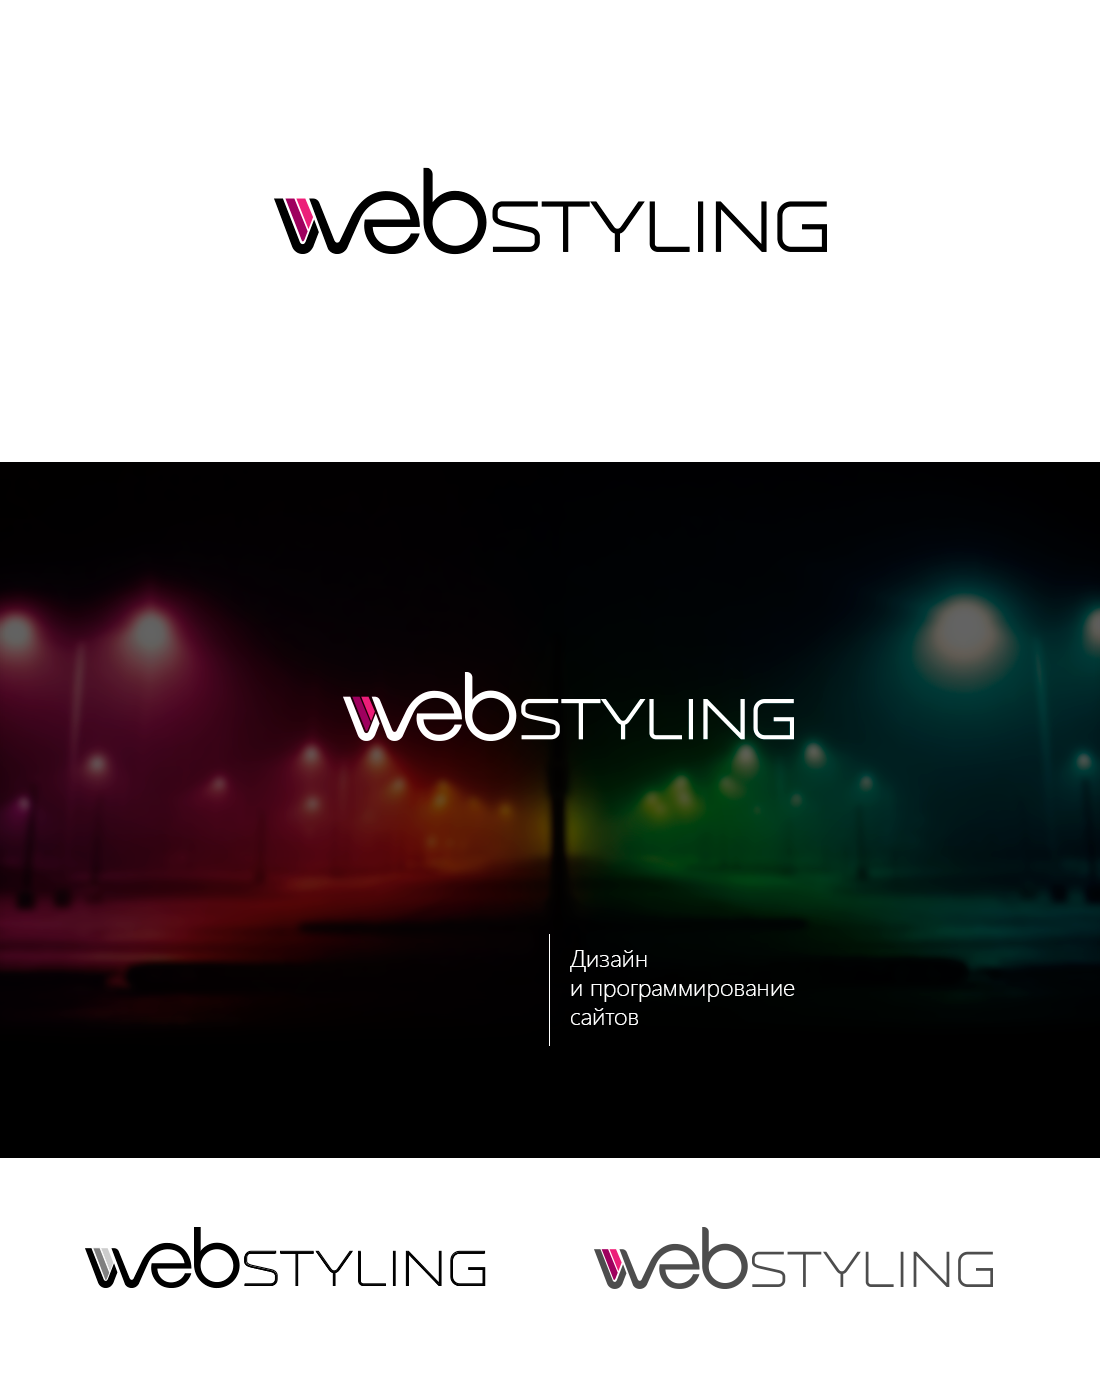 Webstyling